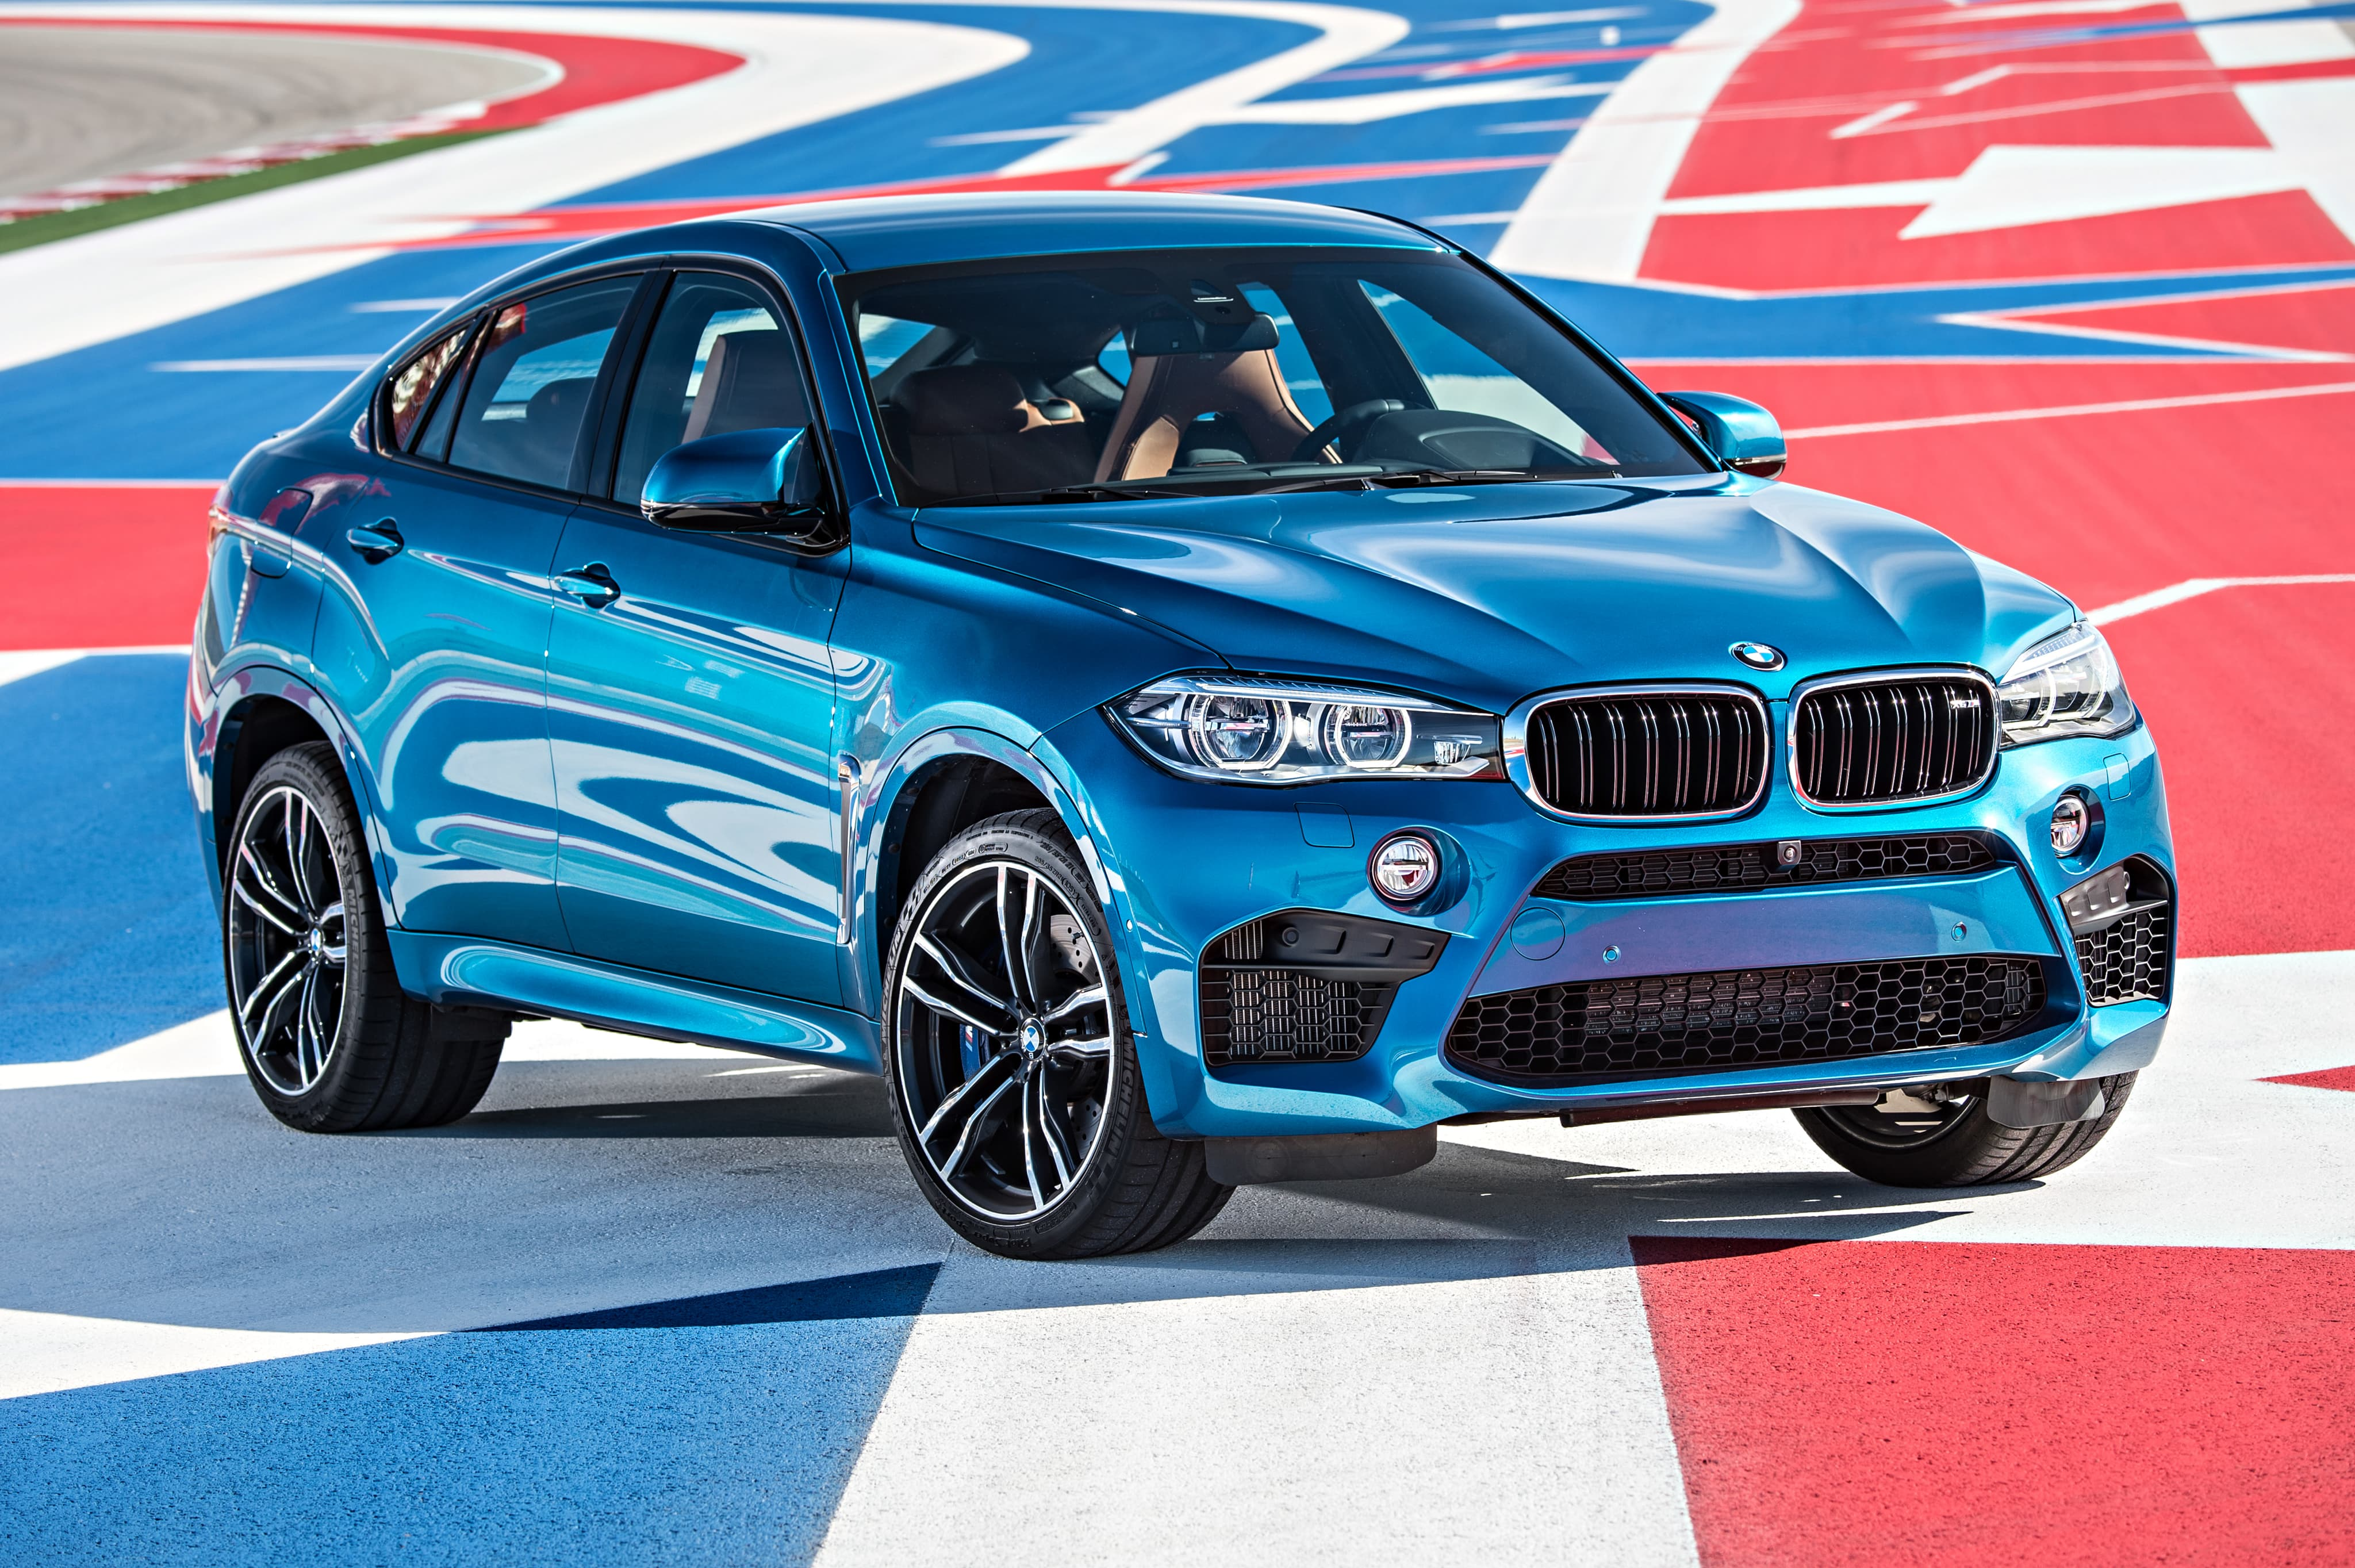 BMW X6 M (F86) Widescreen for desktop